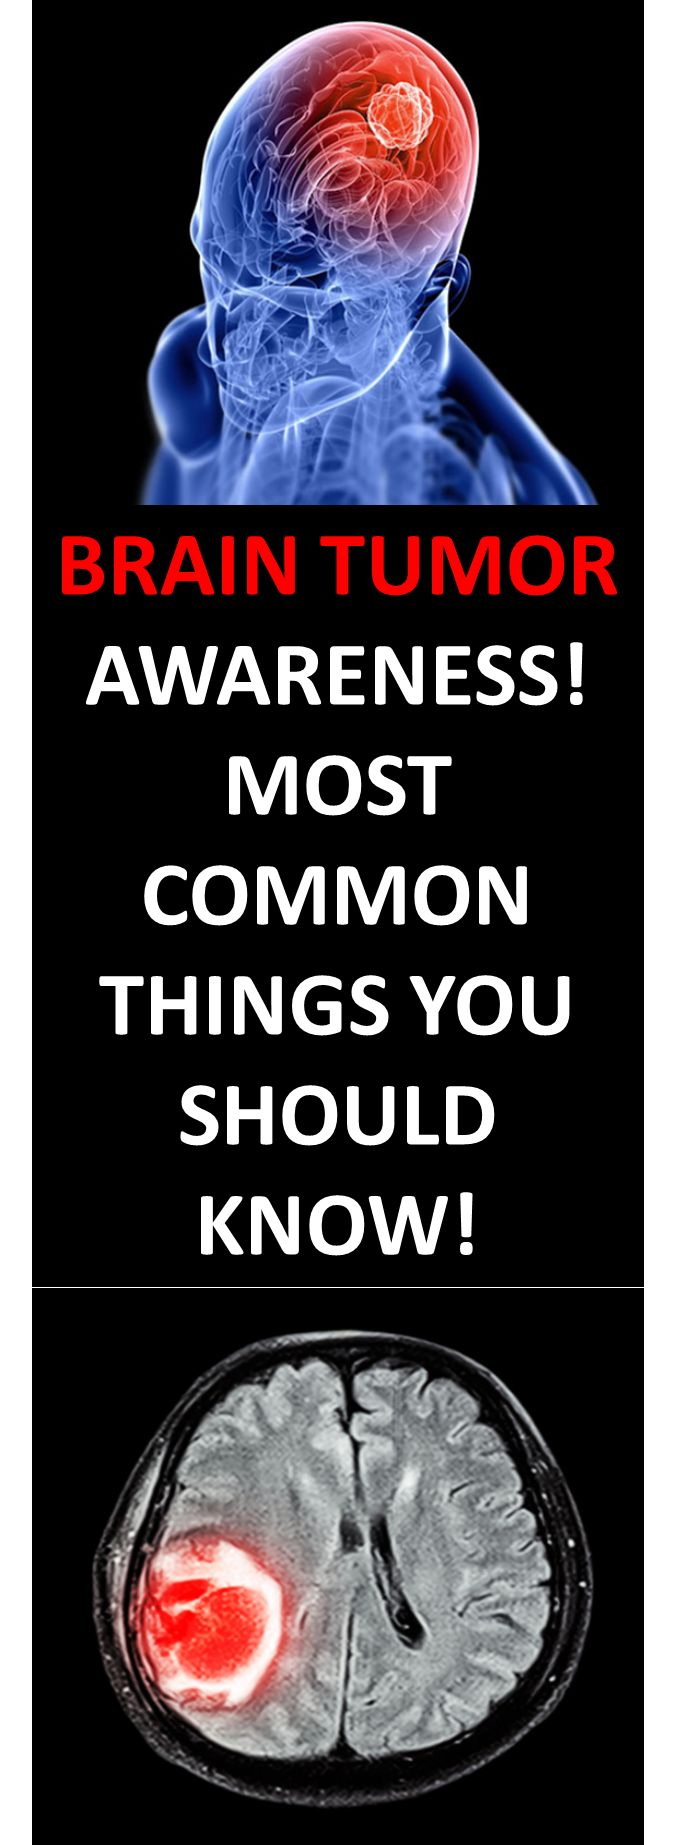 A brain tumor diagnosis can sound like a life-threatening situation. But although the symptoms of most brain tumors are the same, not all tumors are malignant. In fact, meningioma is the most common brain tumor...